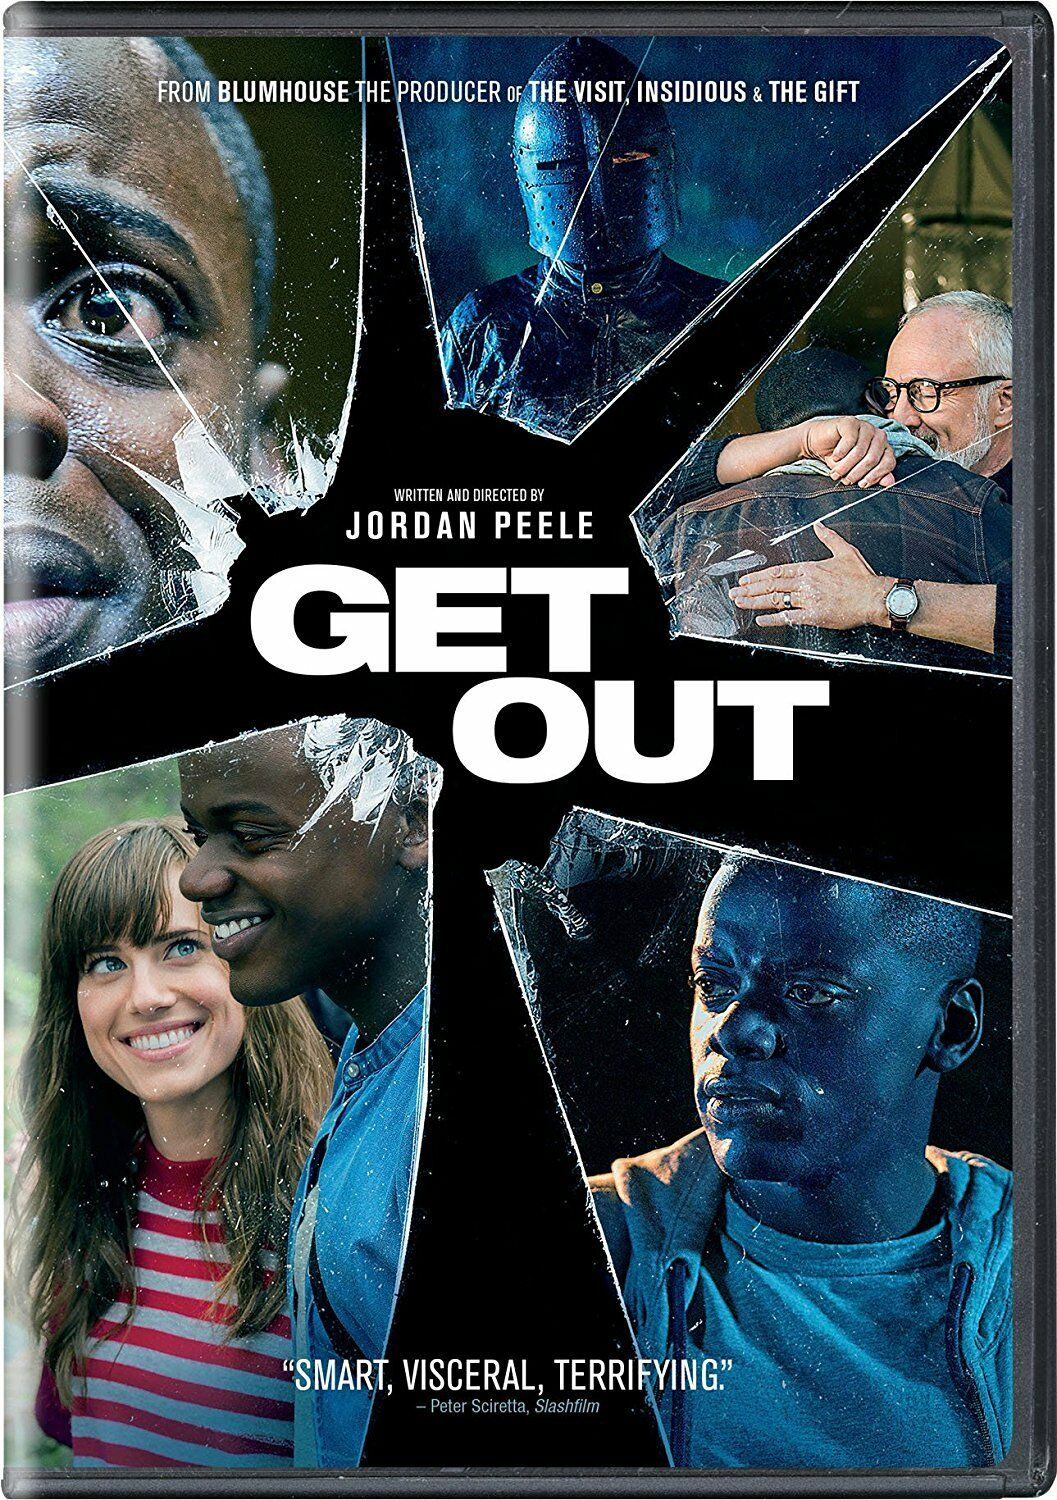 Get Out (DVD, 2017) NEW & SEALED - SHIPS WITHIN 1 BUSINESS DAY WITH TRACKING